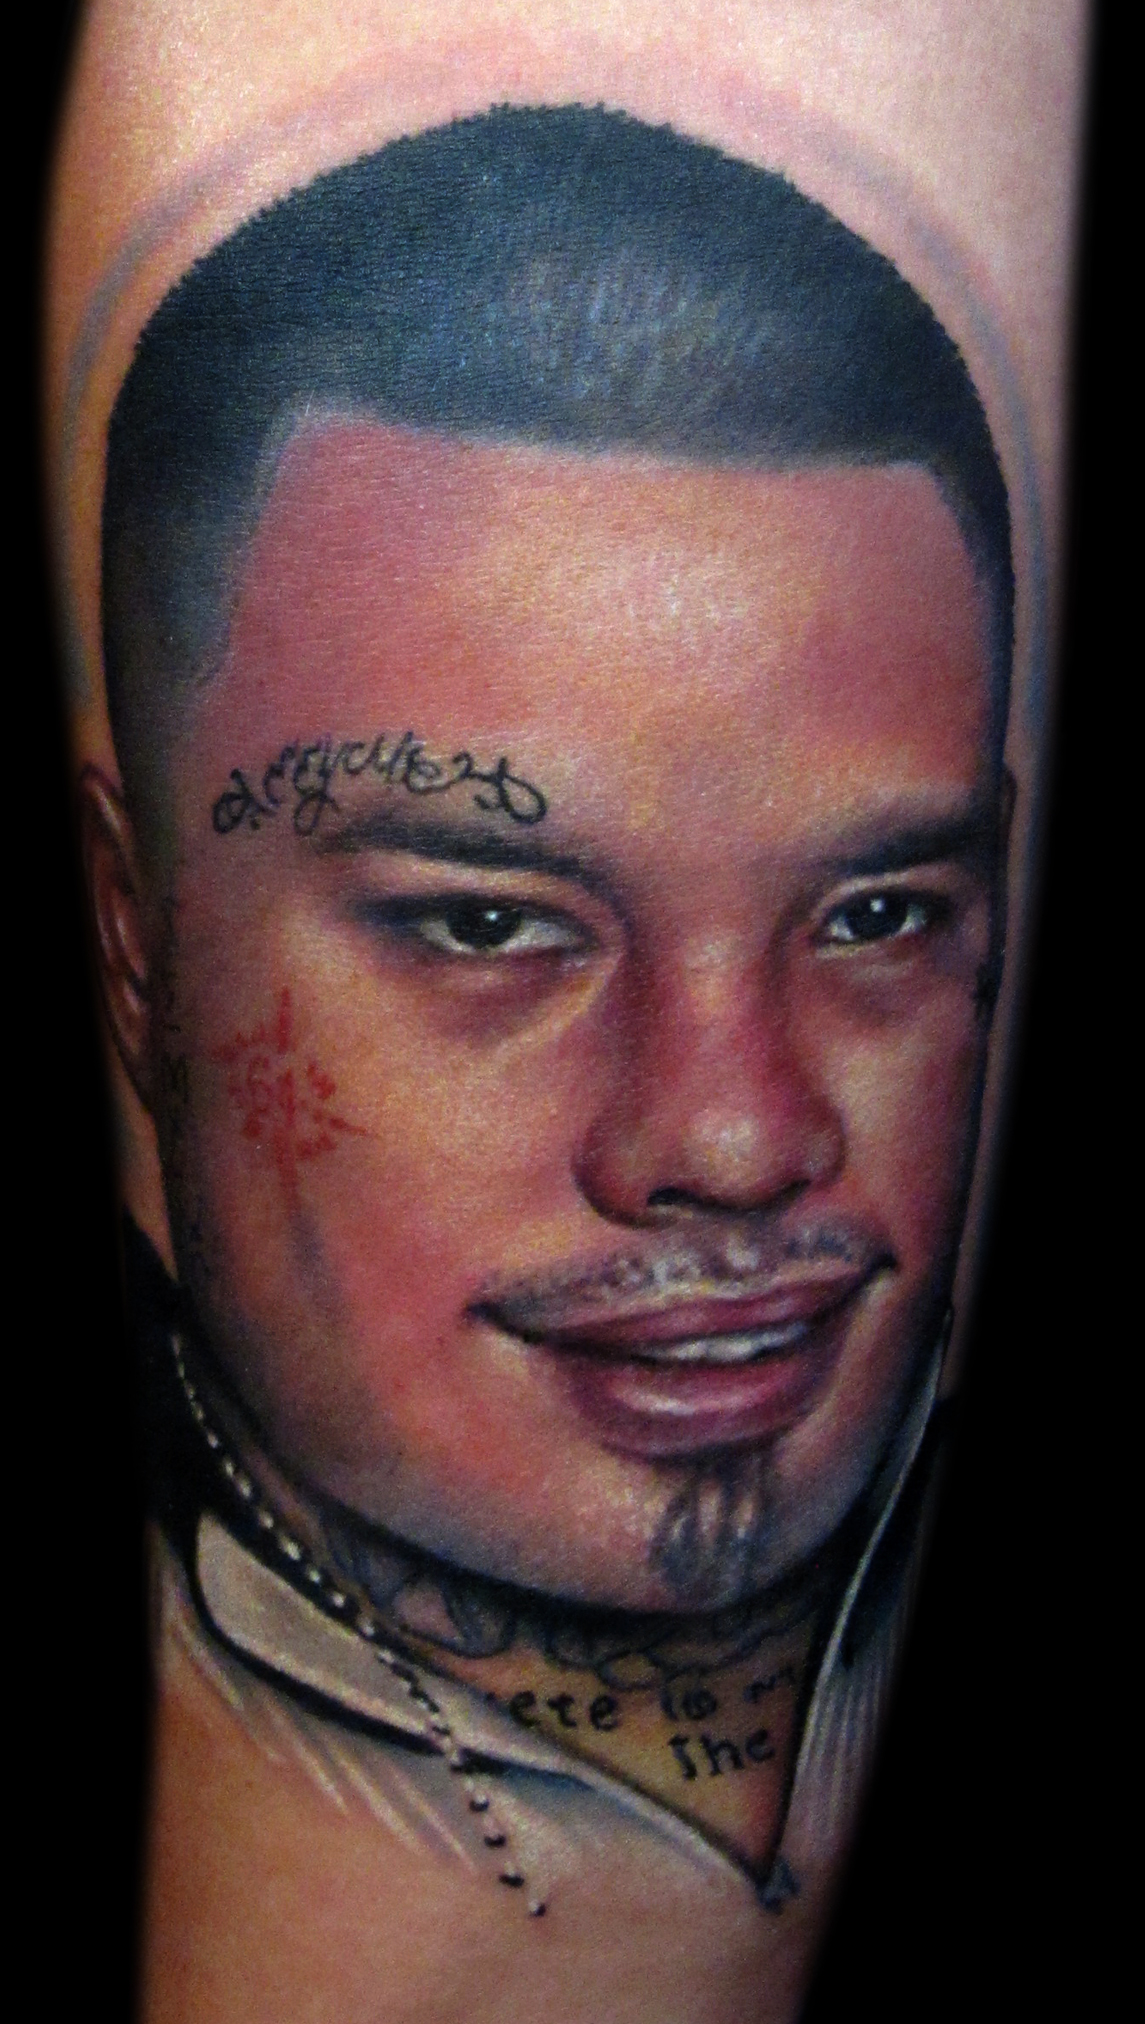 Liz Cook Tattoo Realistic Color Portrait Mels 300res.jpg